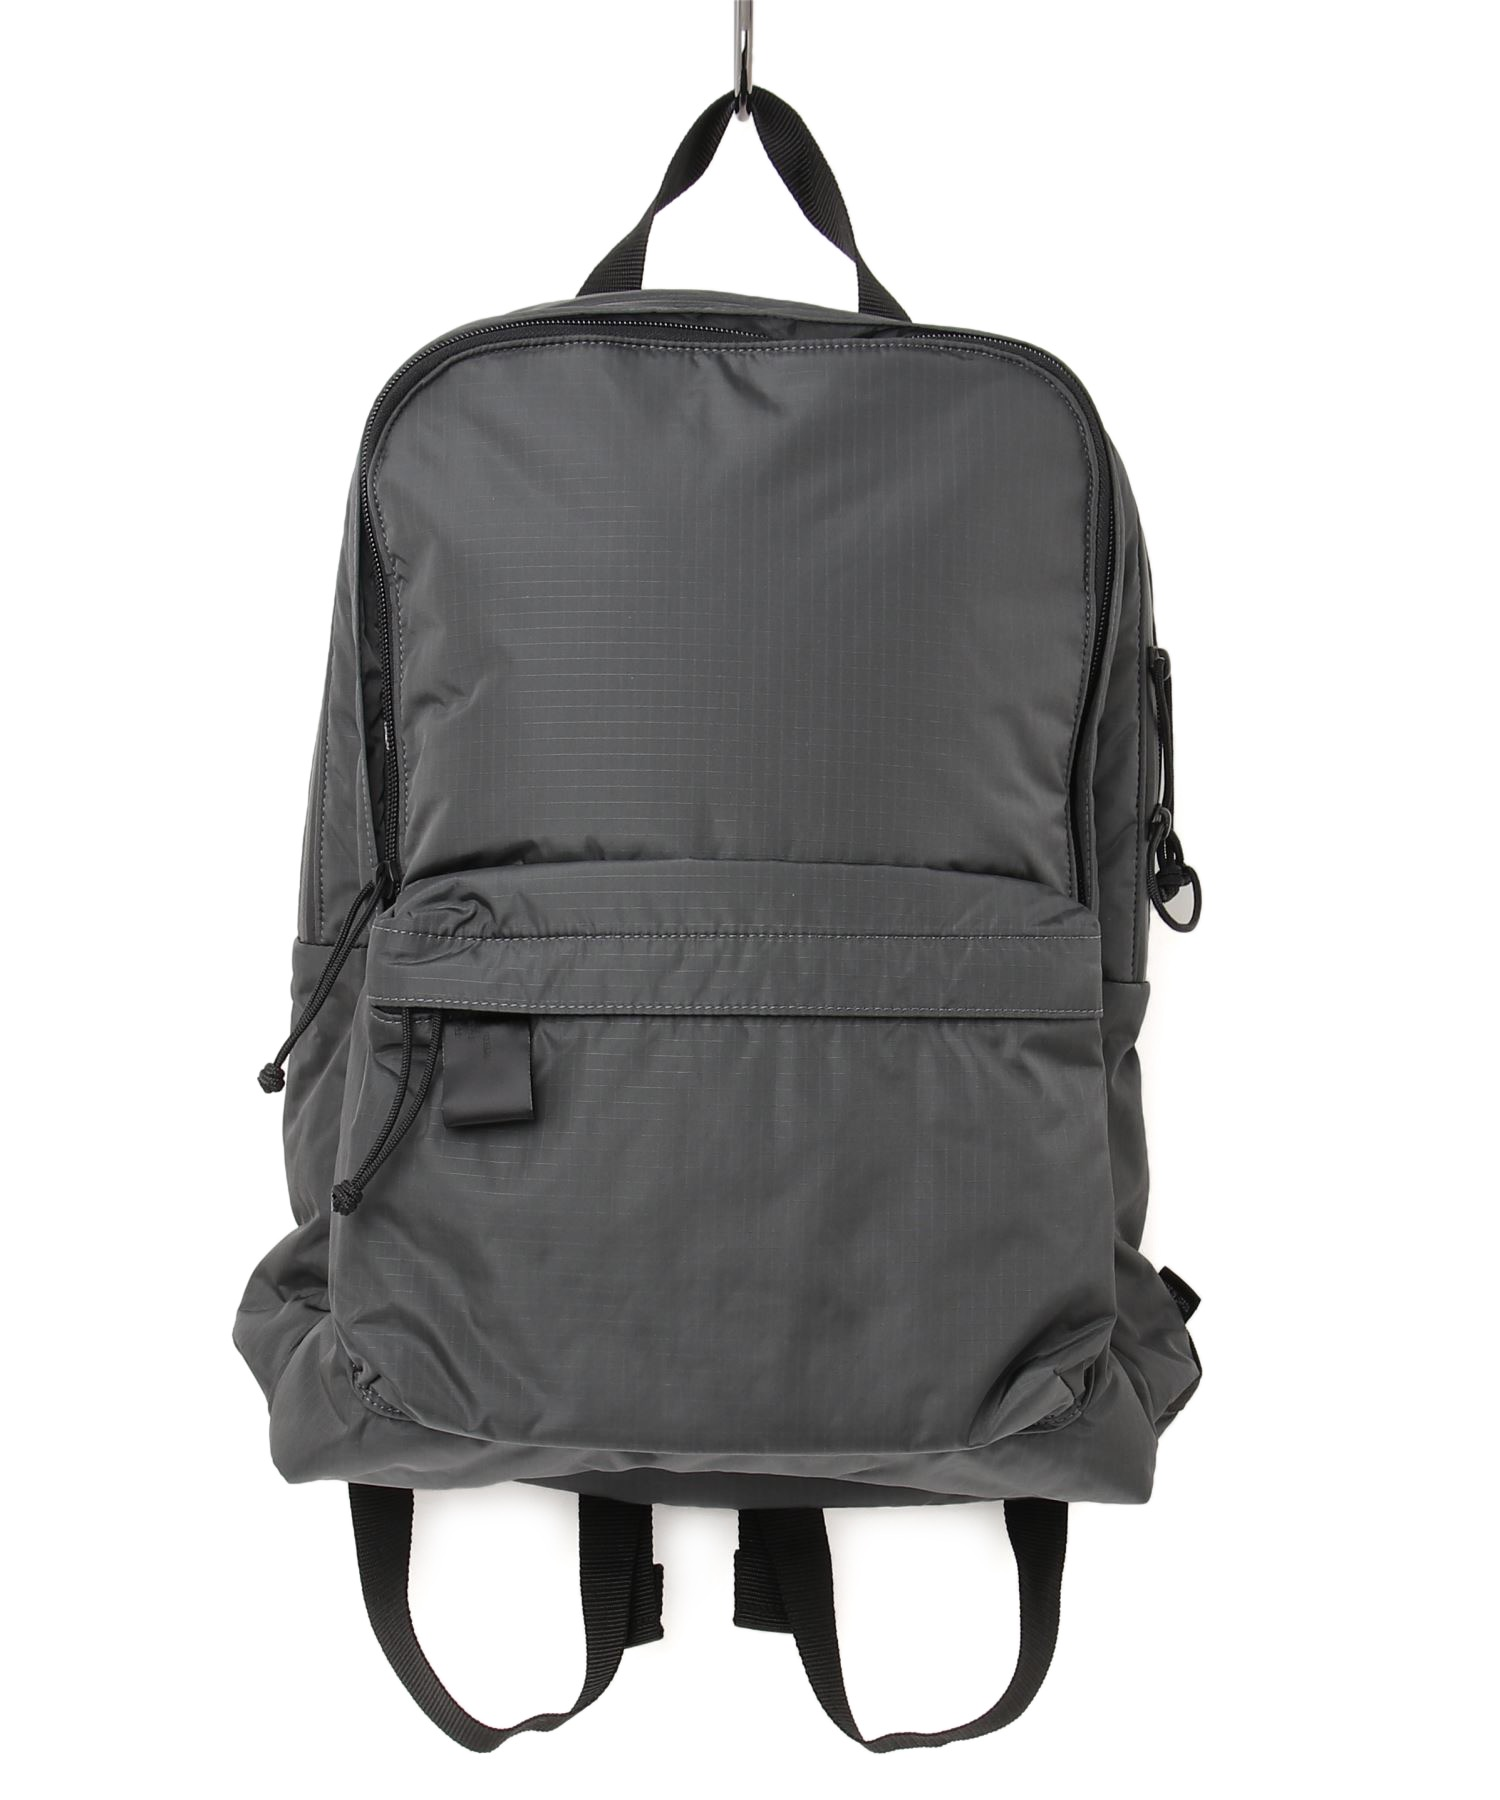 BACK PACK (SMALL SIZE)